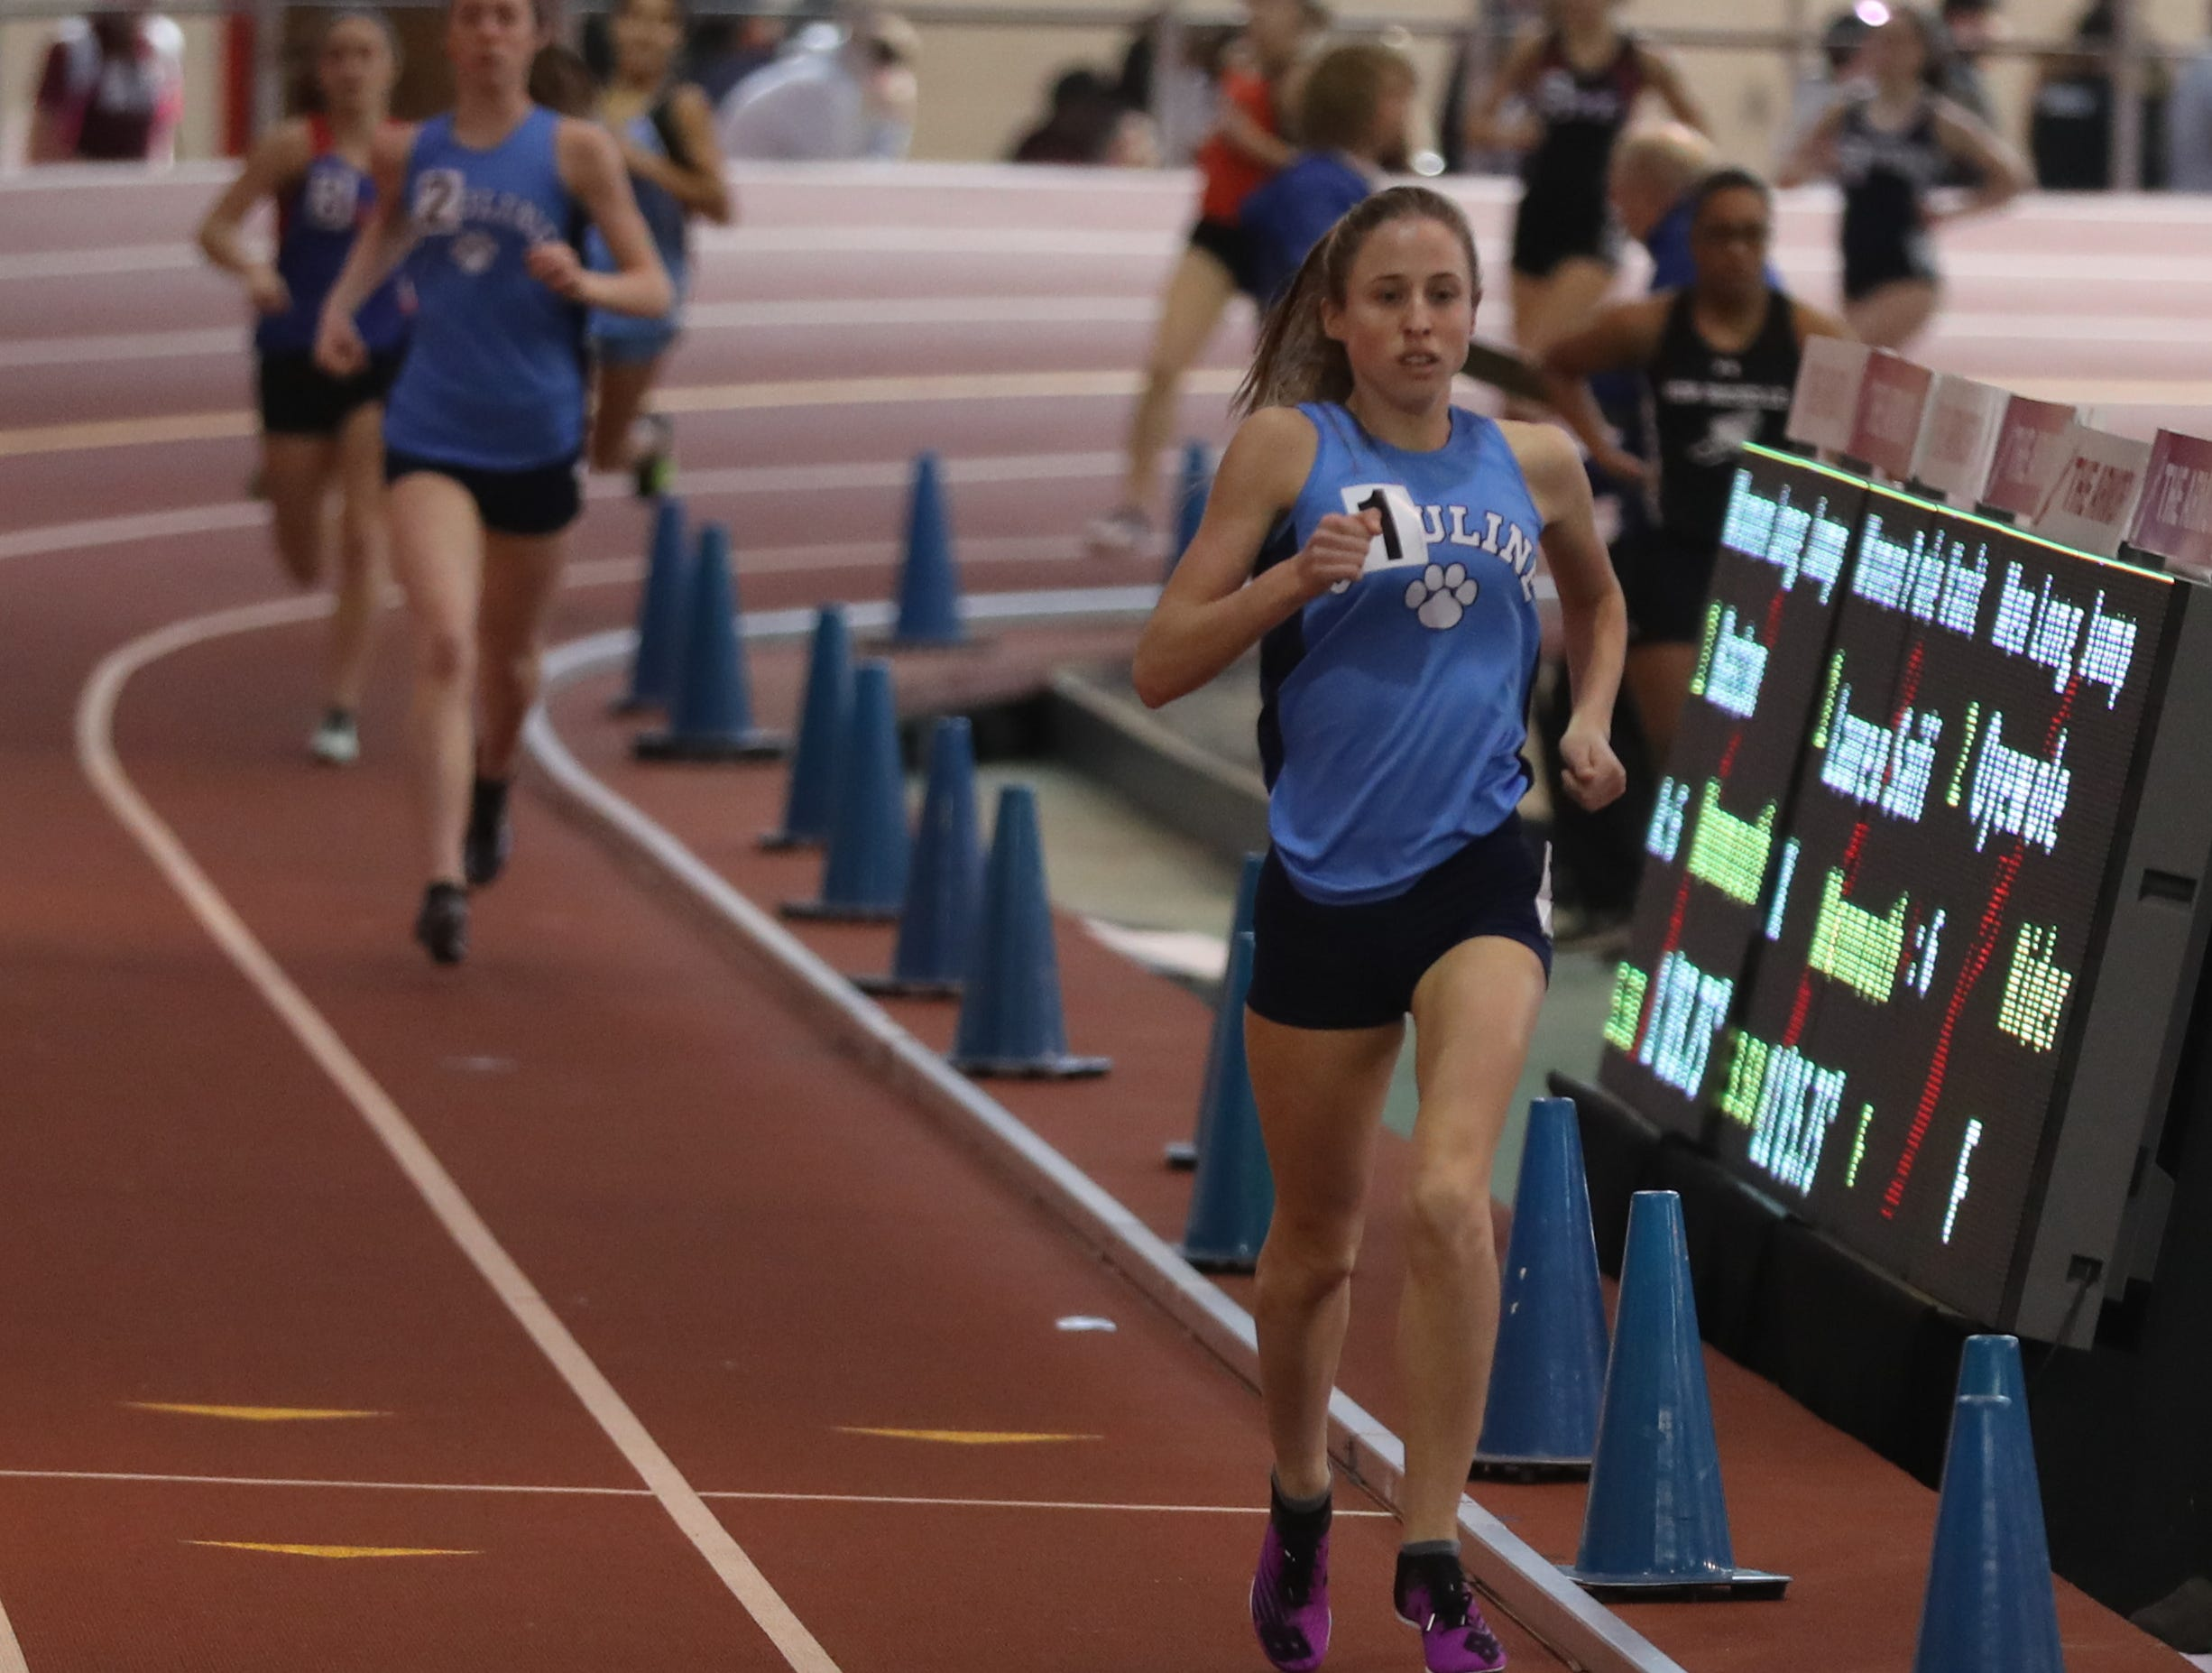 Lily Flynn of Ursuline won the 1000 meter race in the Section 1 New York State Track and Field State Qualifier at the New Balance Armory in Manhattan Feb. 17, 2019.